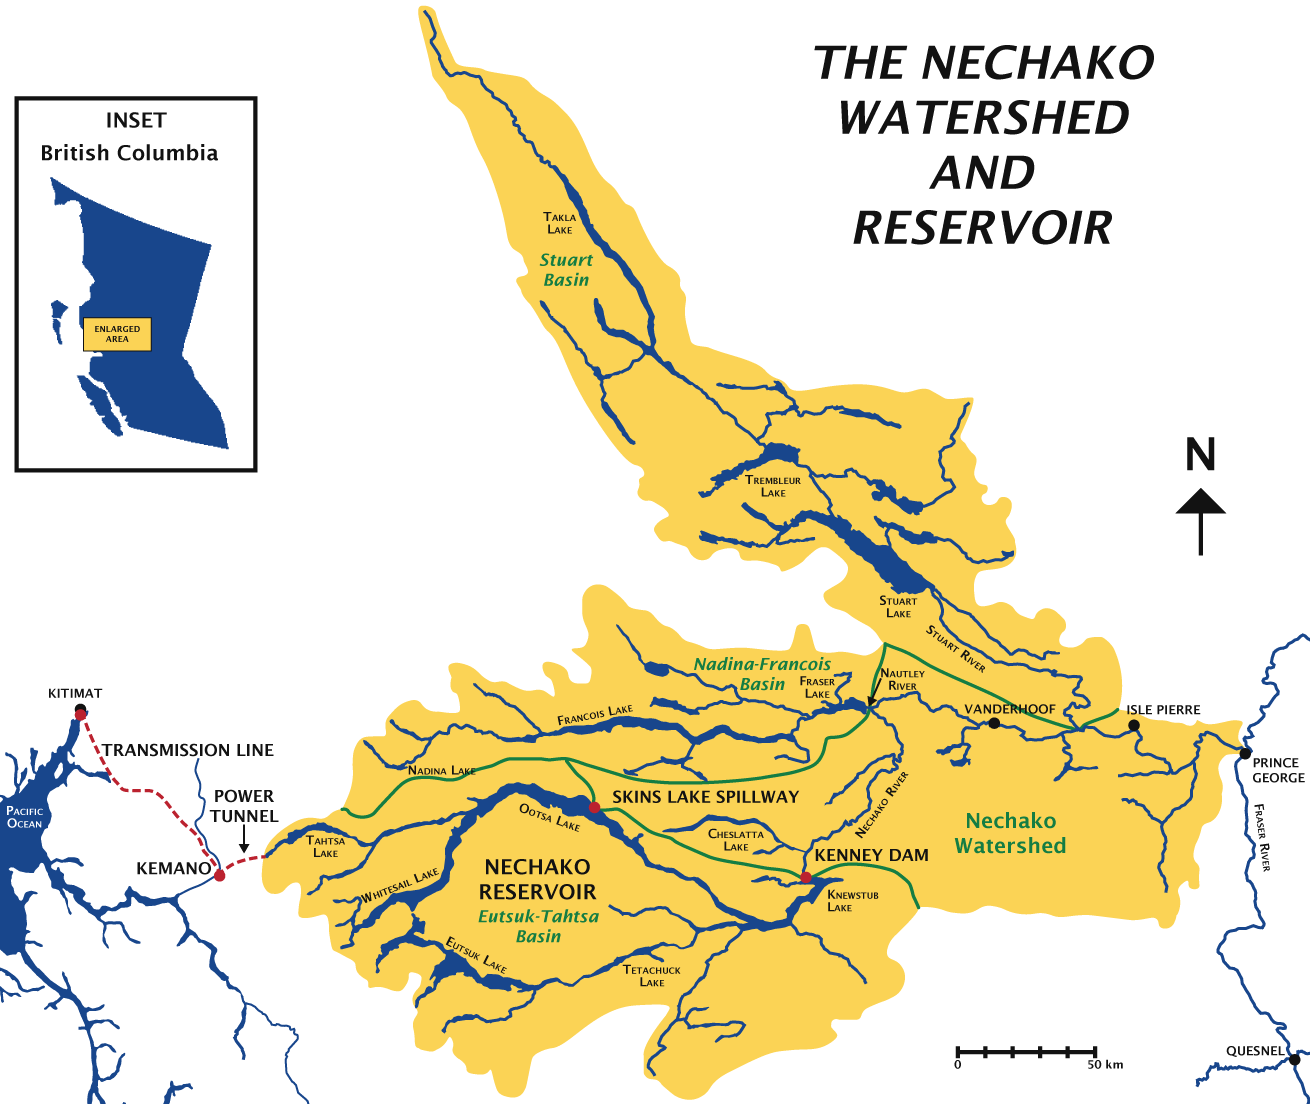 Nechako Reservoir and Watershed